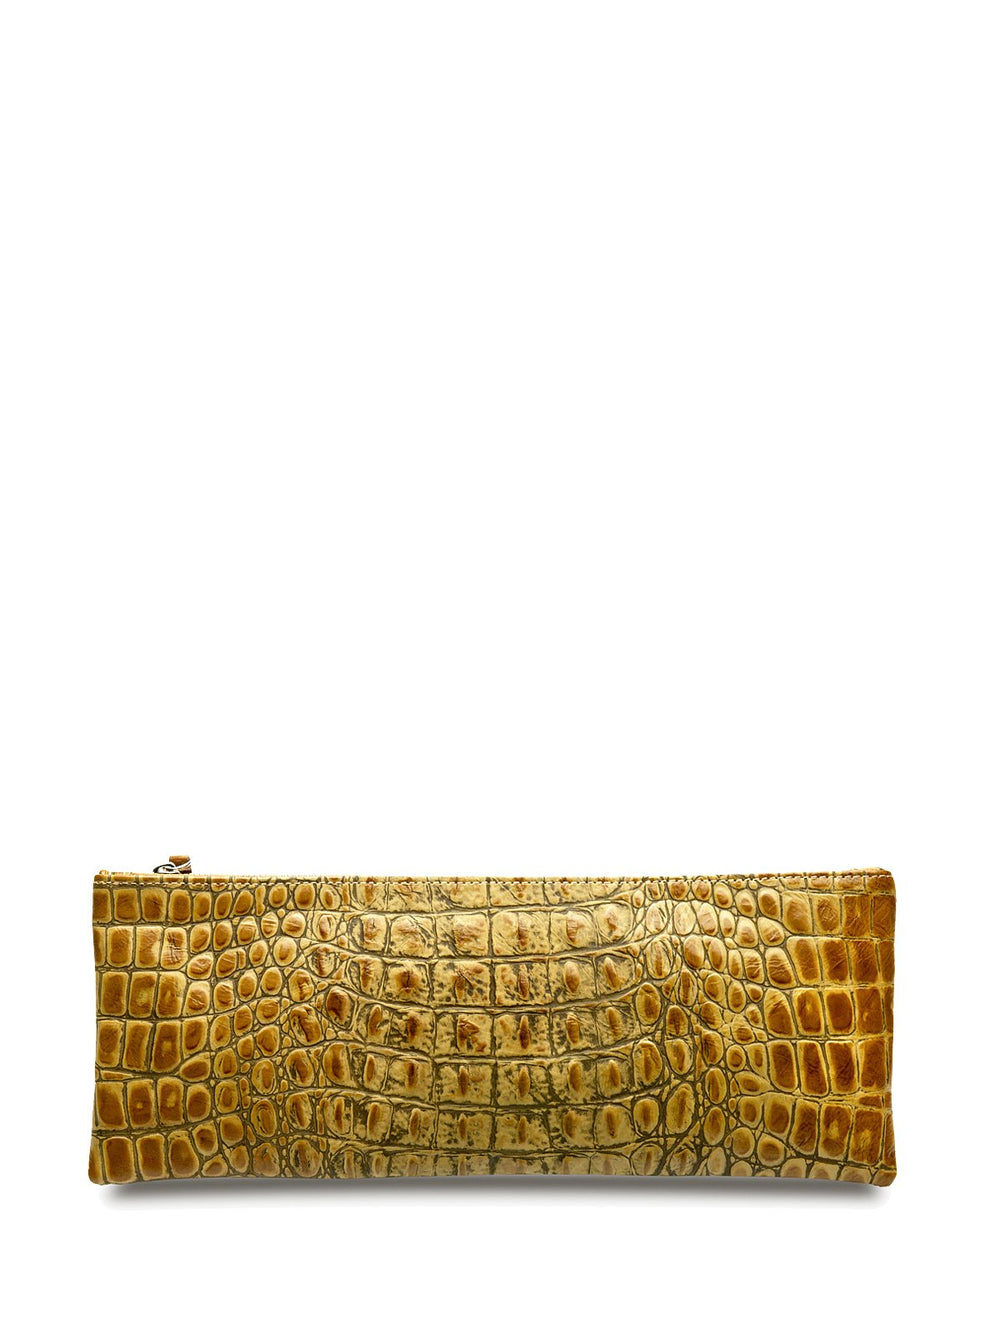 Abundance In Caramel Clutch, FENA - elilhaam.com